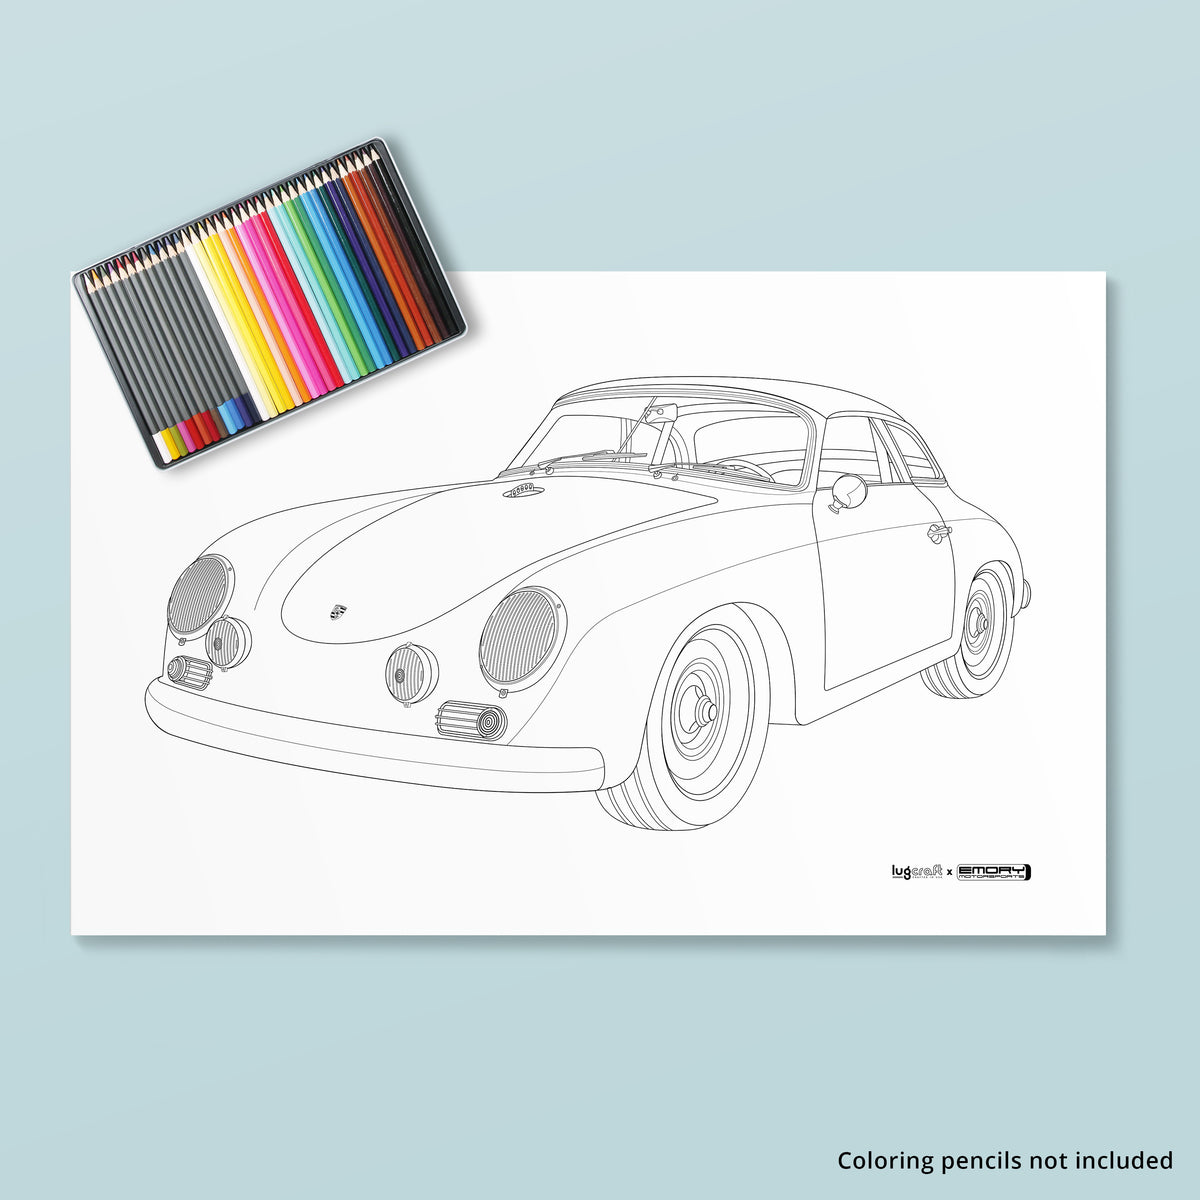 EMORY SPECIAL 356 CABRIOLET COLORING POSTER - Lugcraft